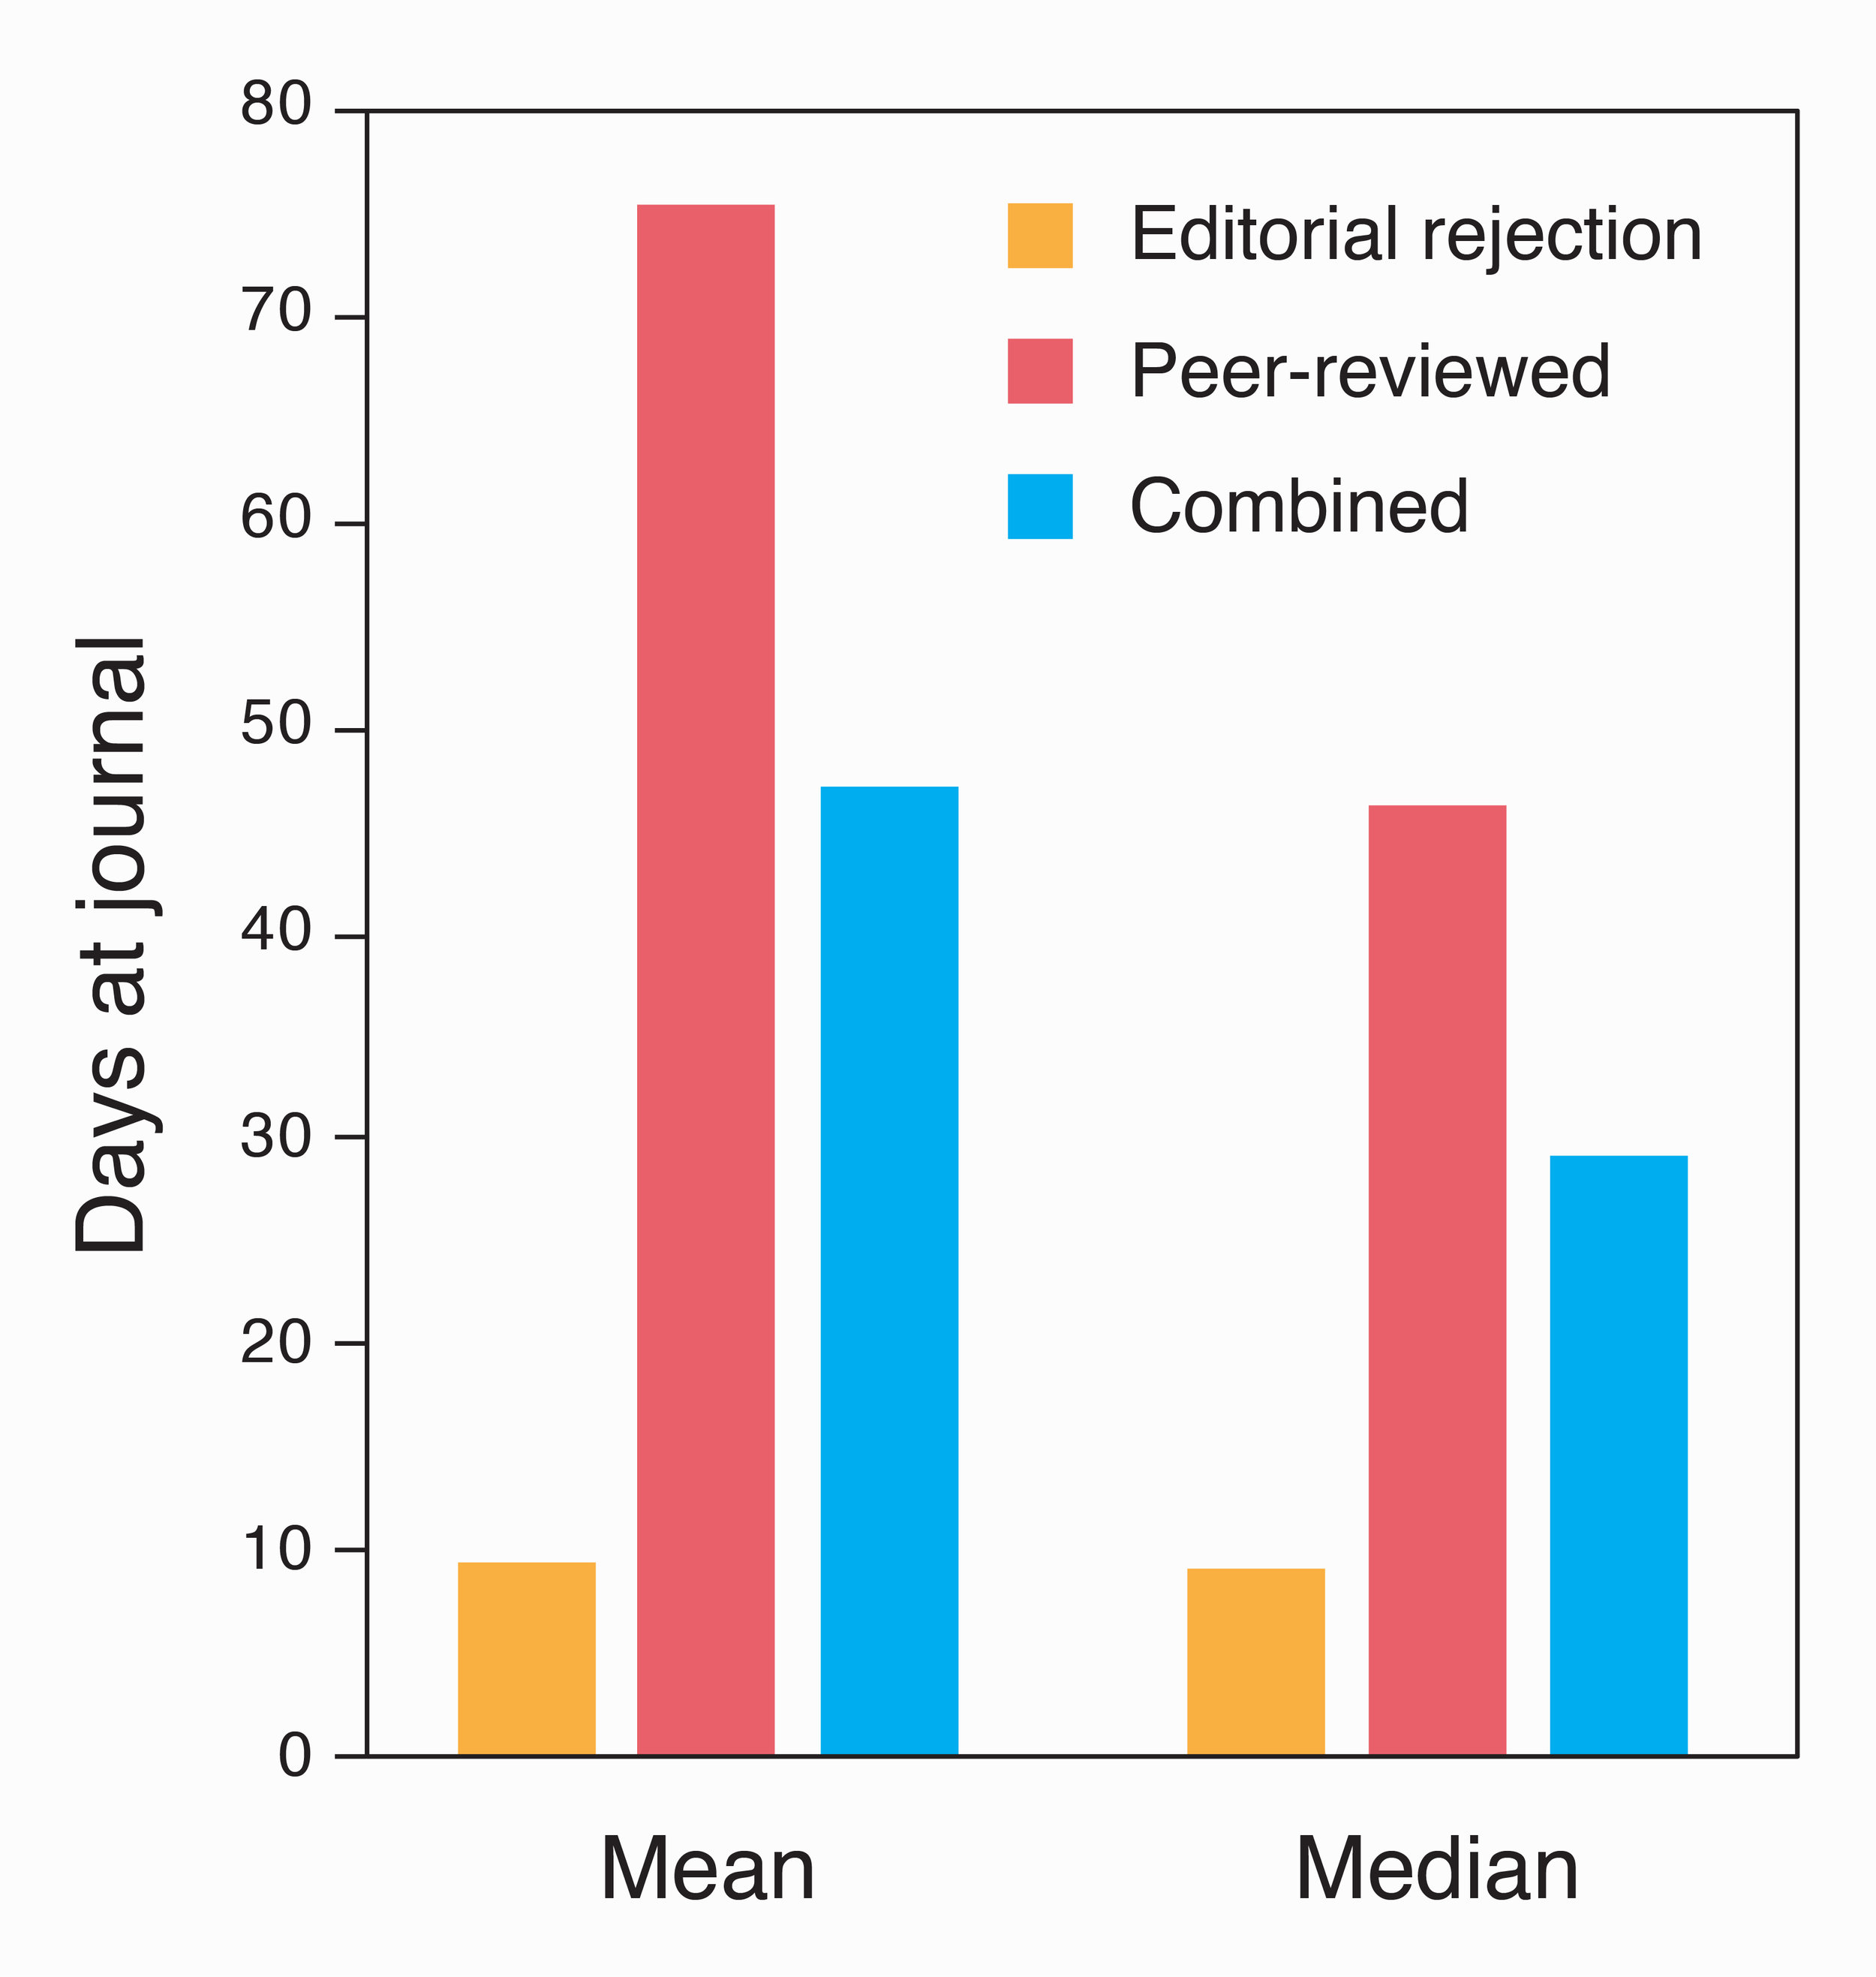 Average number of days at journals, either editorially rejected or sent out for peer-review.